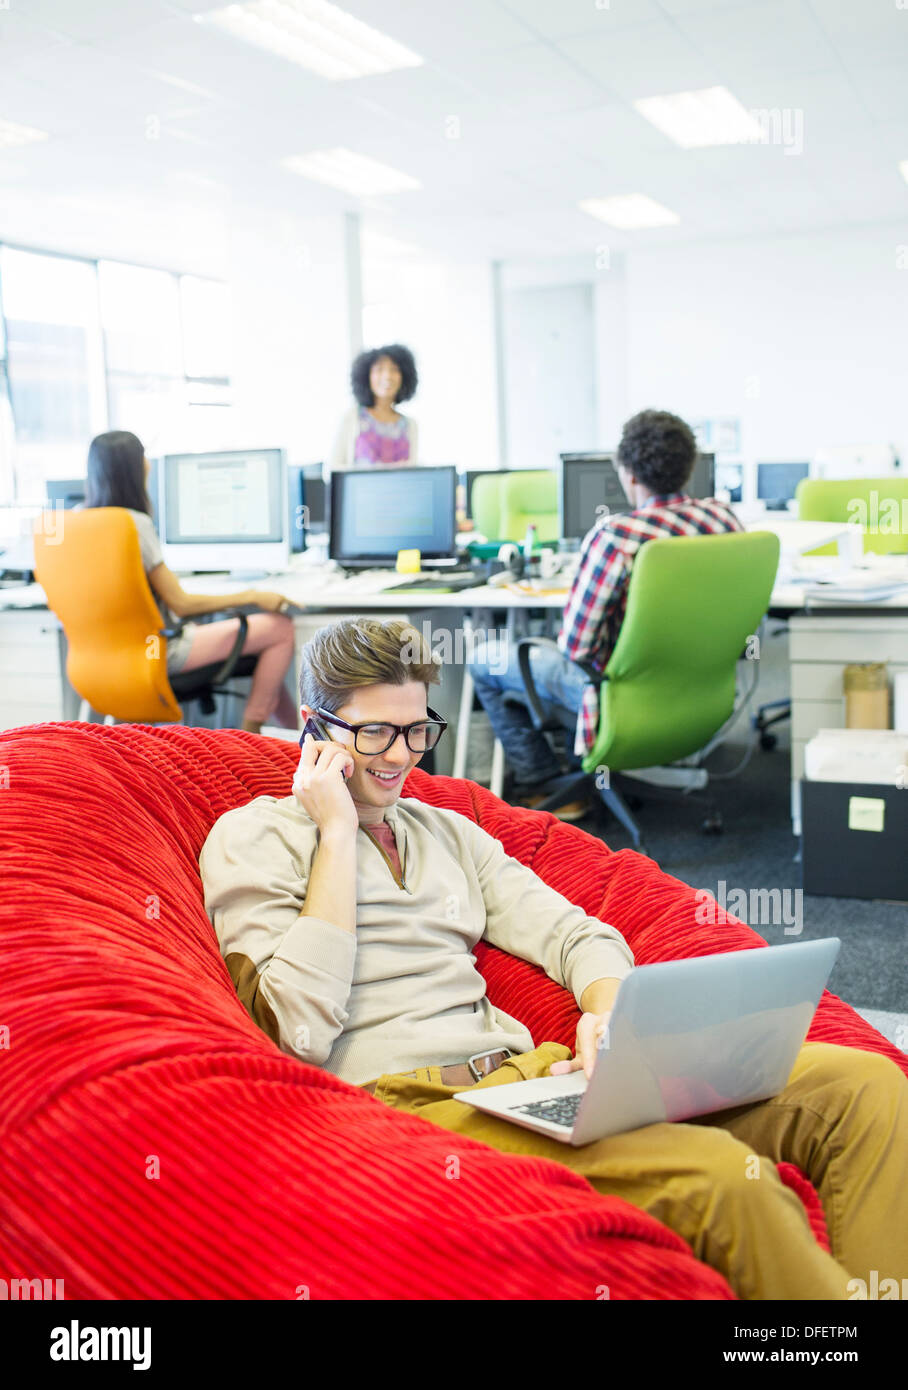 Businessman working in beanbag chair in office - Stock Image